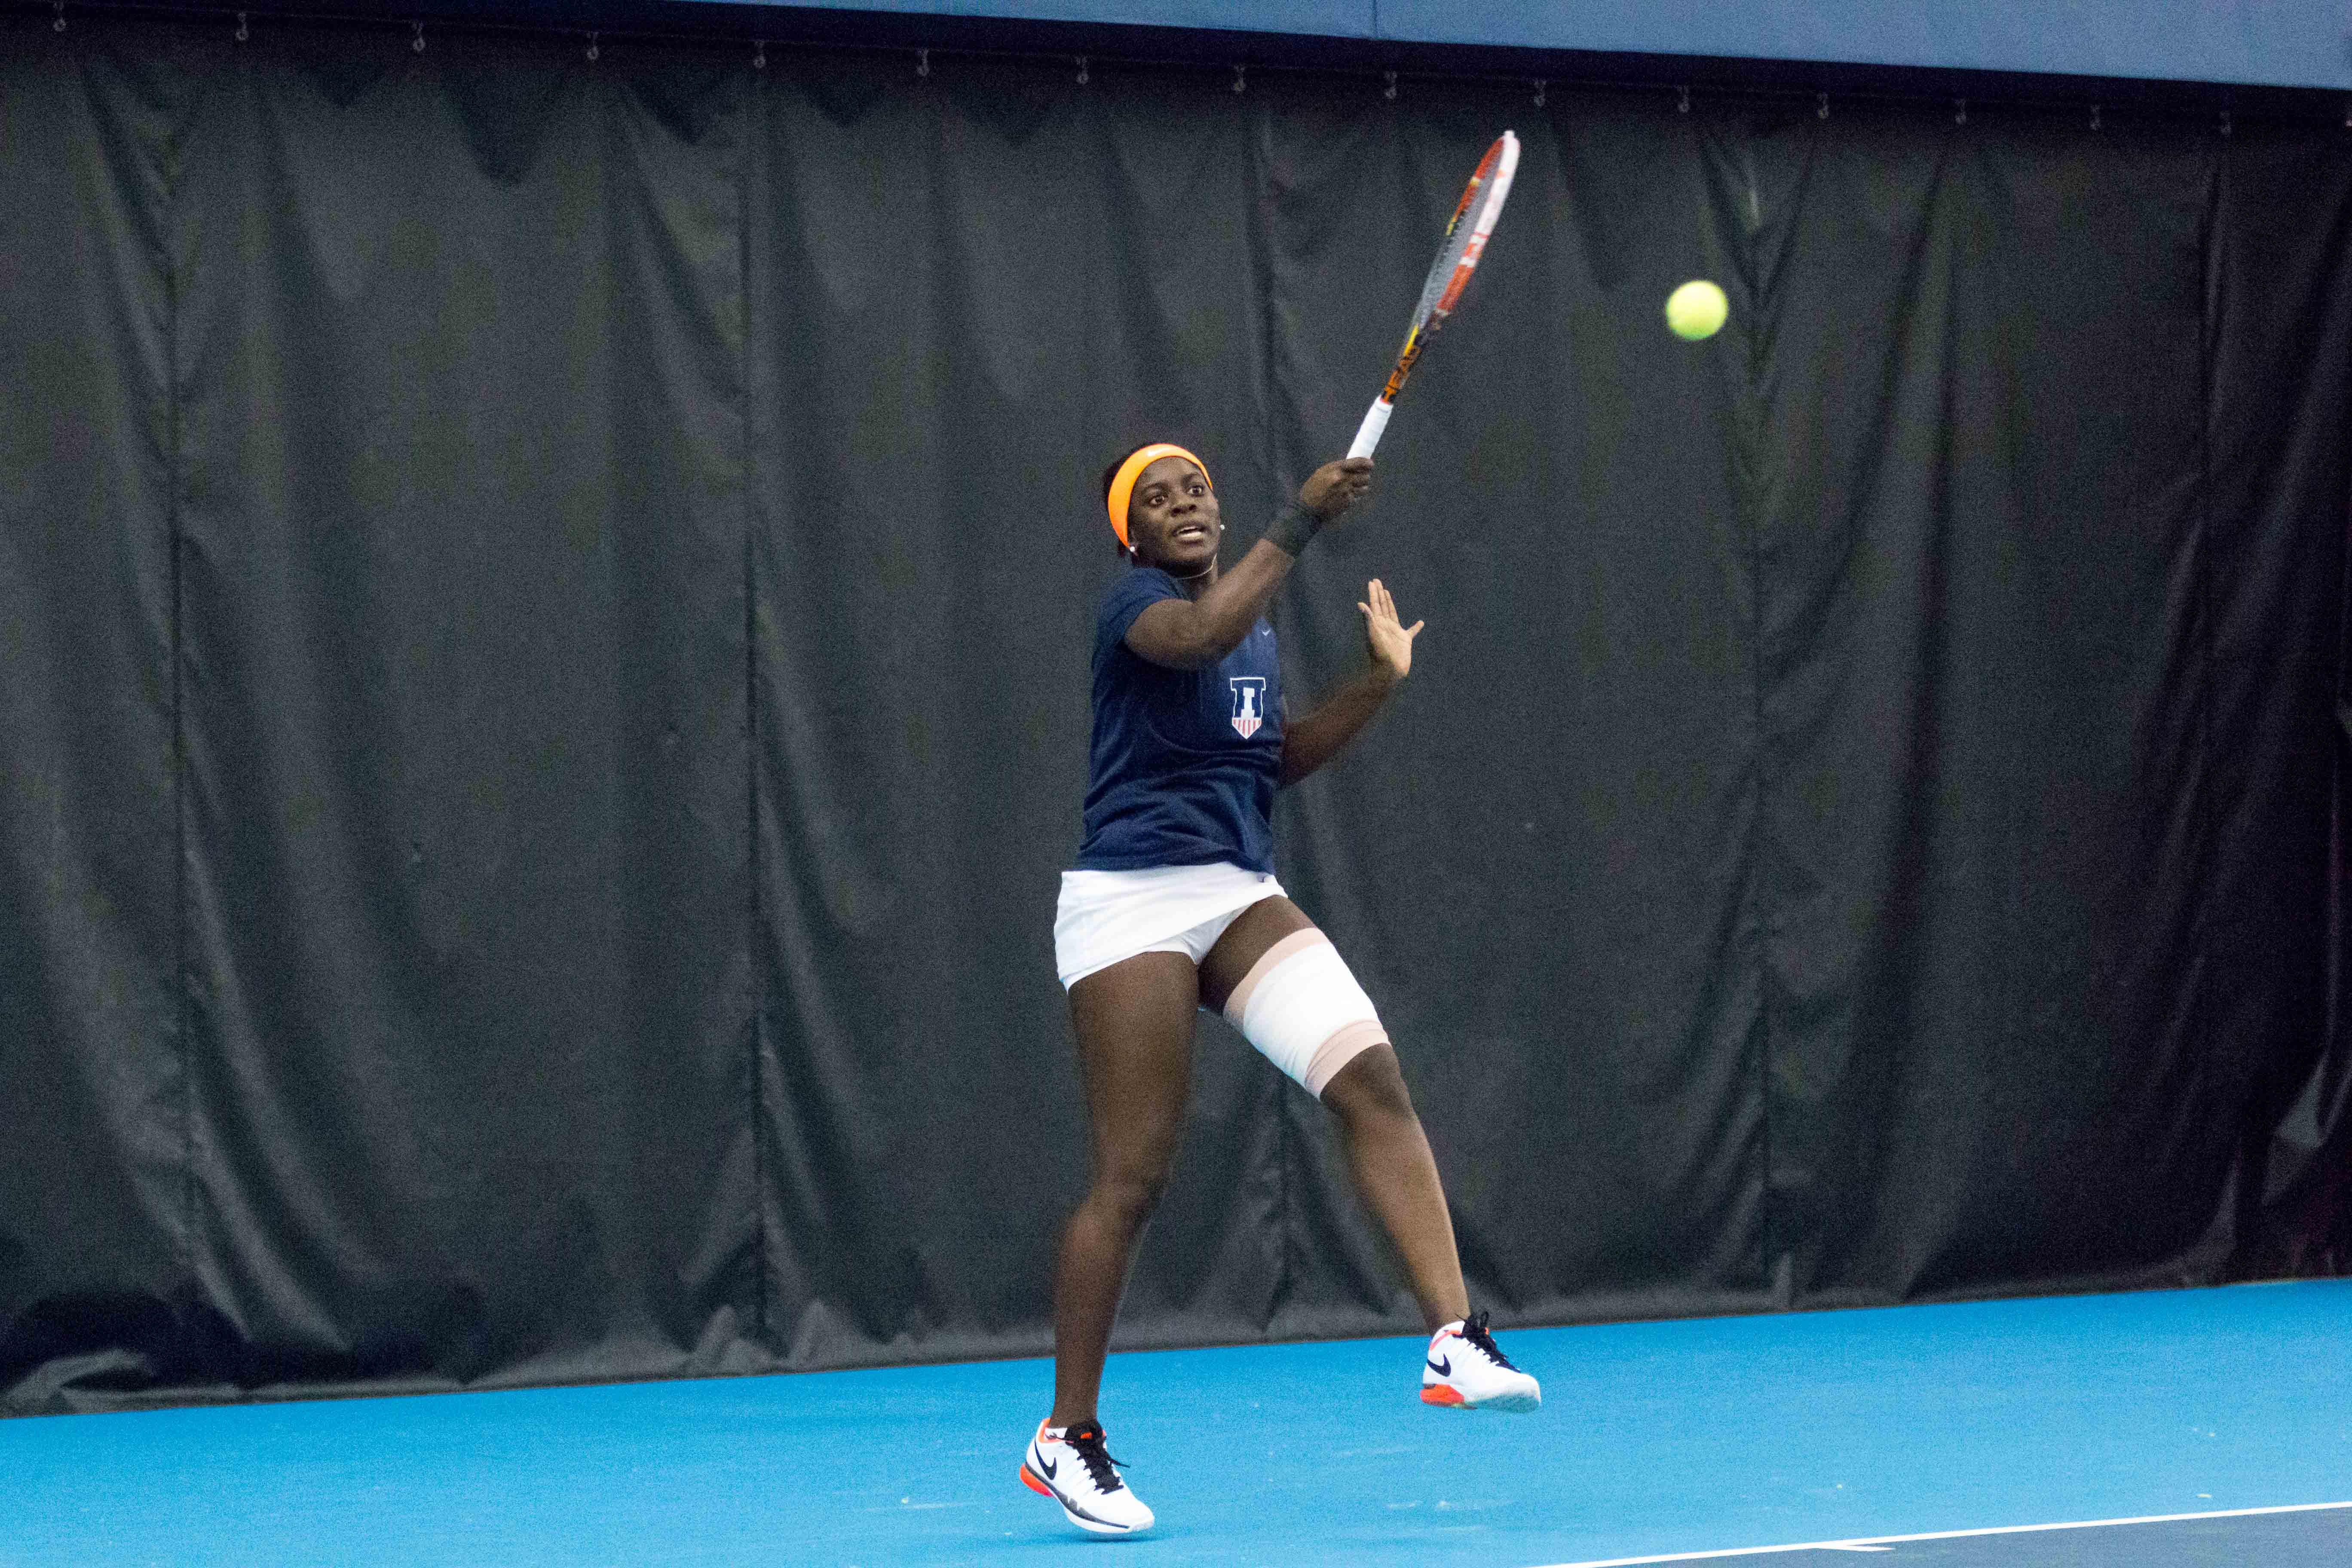 Illinois' Ines Vias returns a ball during against DePaul at the Atkins Tennis Center on Feb. 19.